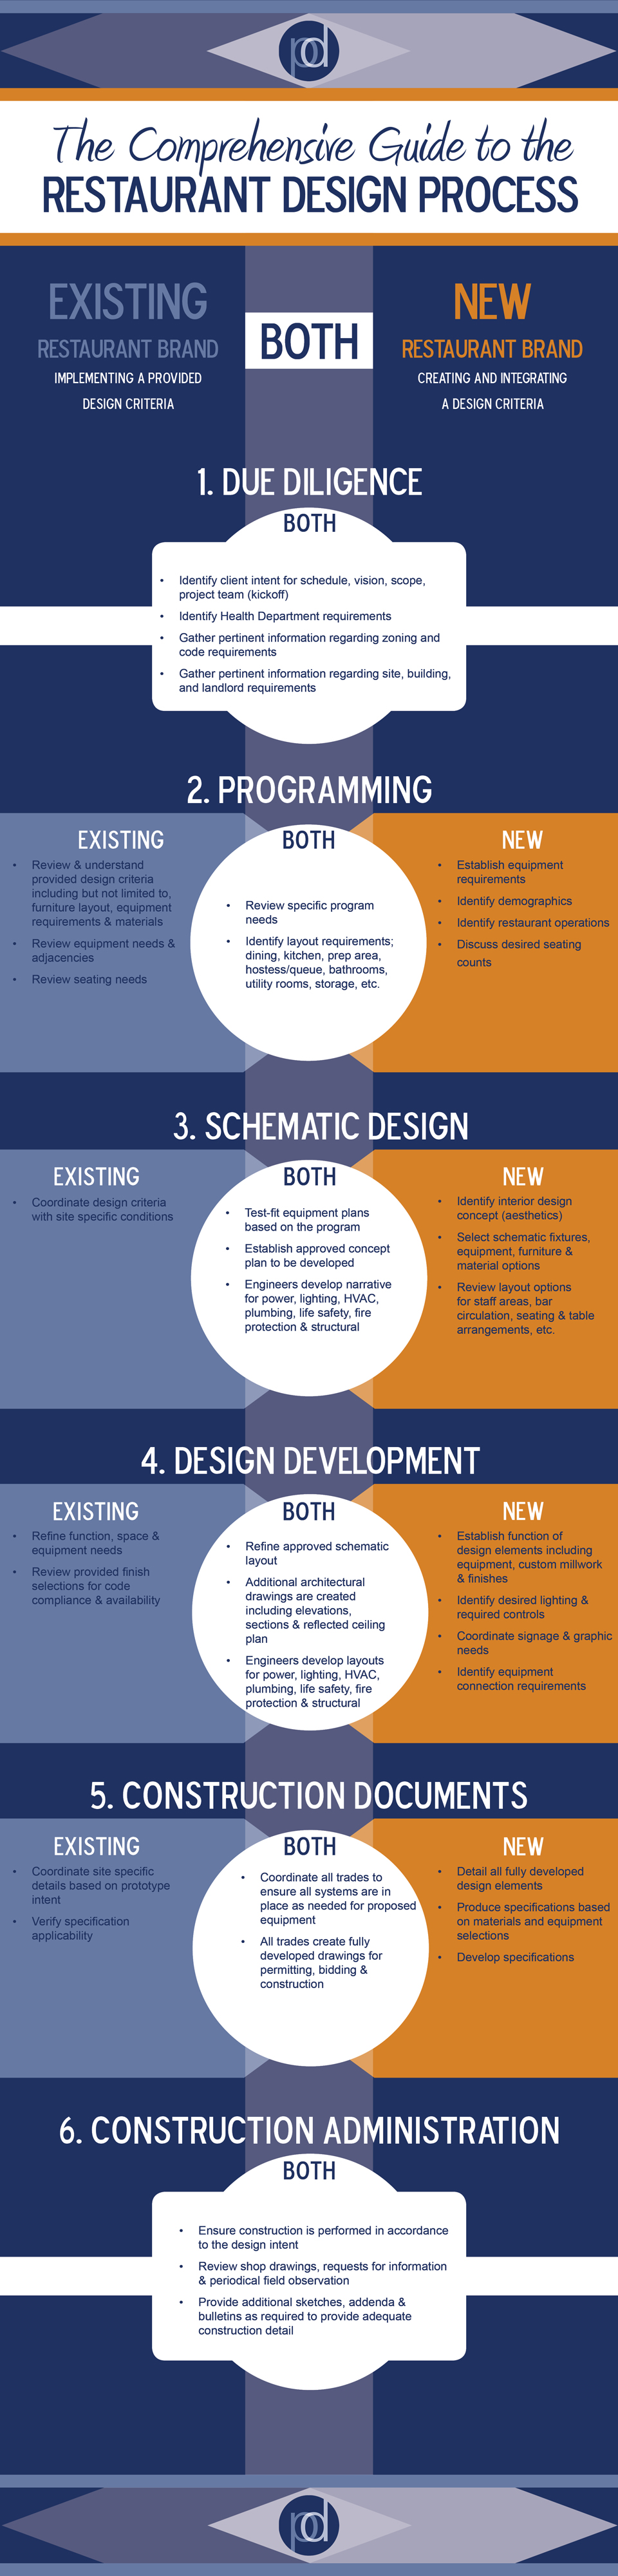 Comprehensive-Guide-to-Restaurant-Design-Process-Infographic.jpg